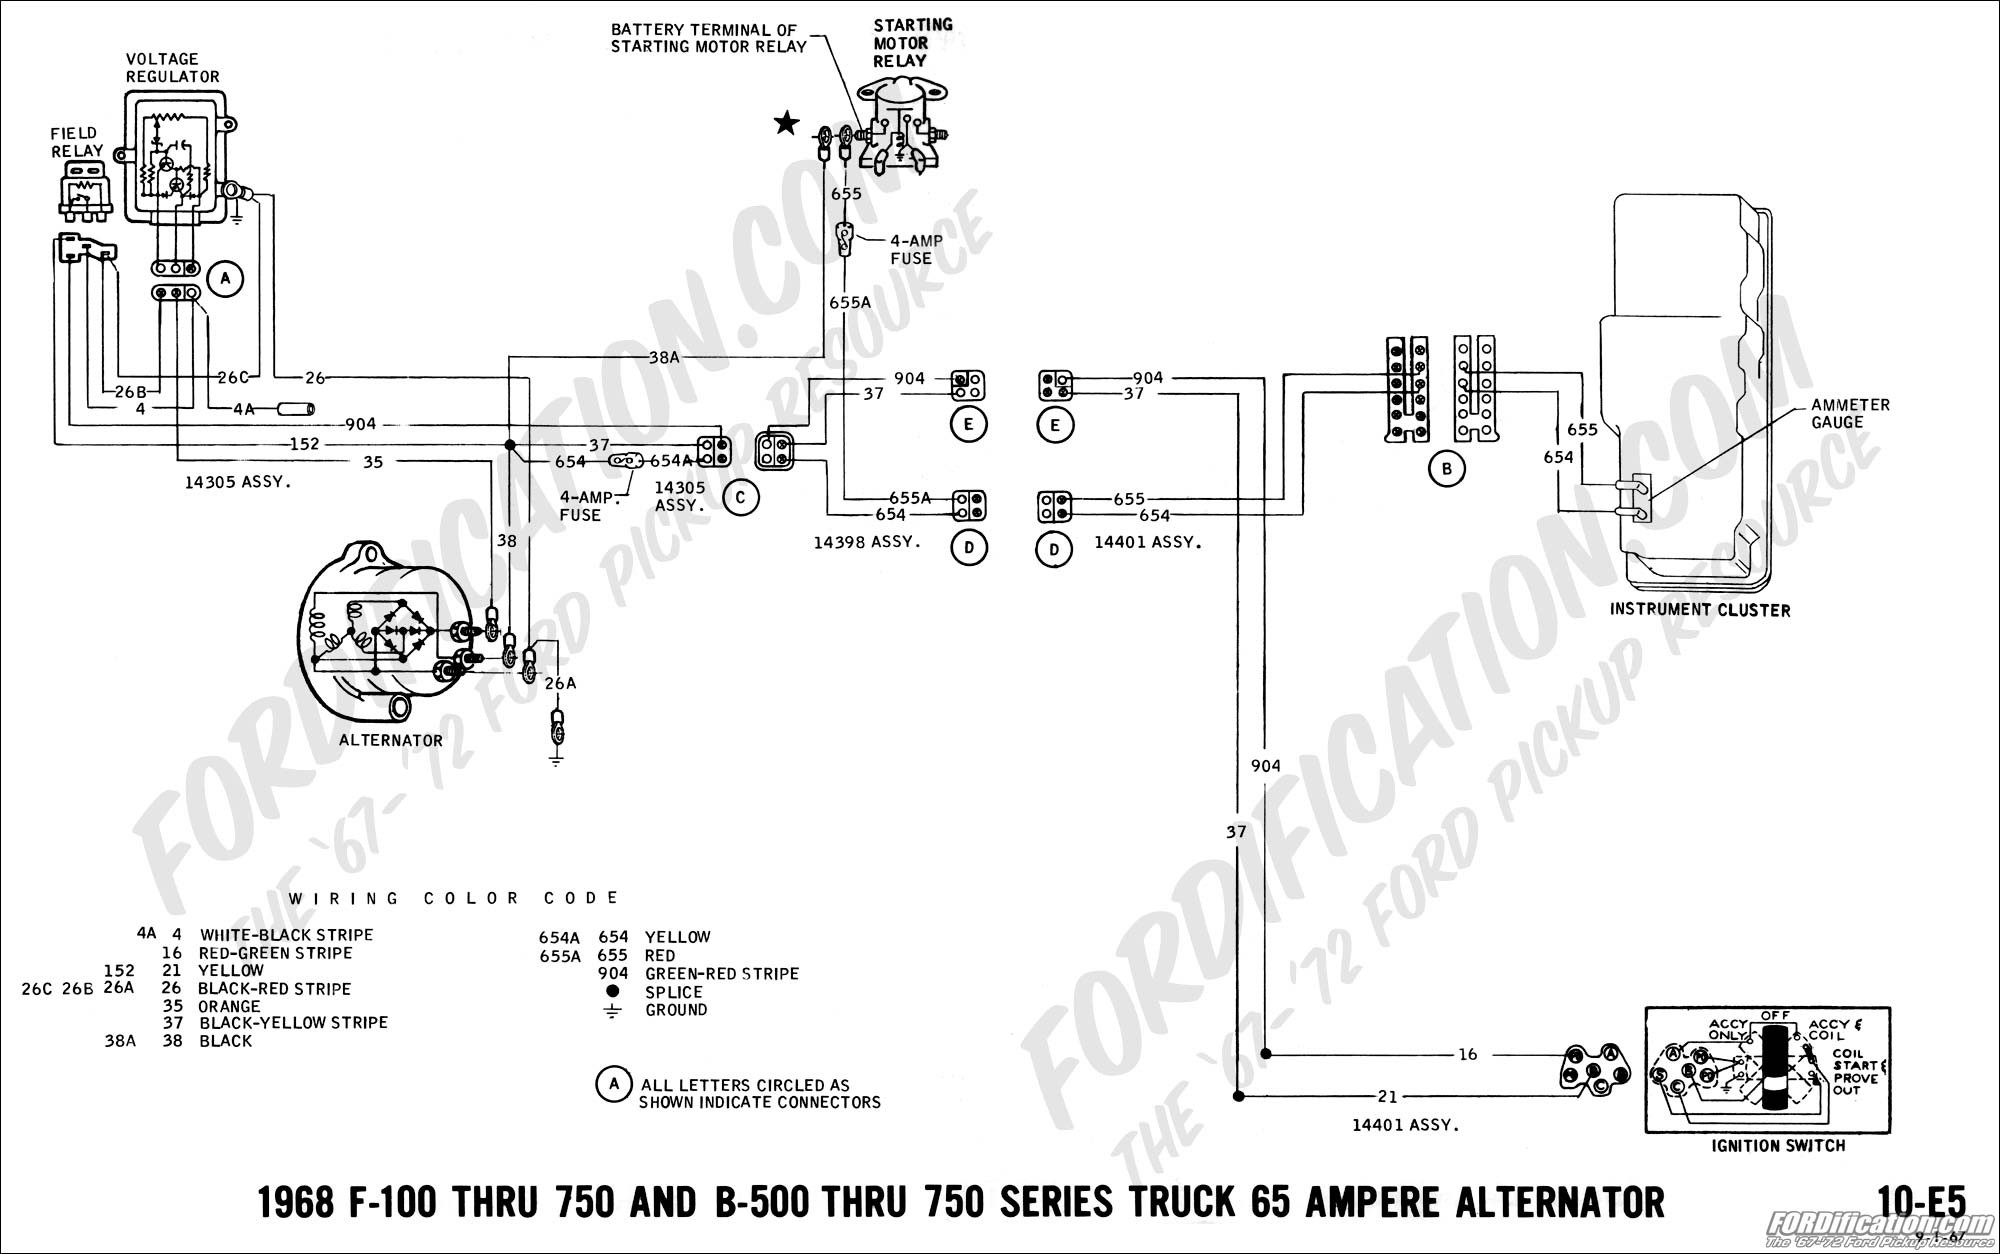 hight resolution of 1972 ford f100 voltage regulator wiring electrical schematic diagram of alternator wiring on a 1972 ford f100 302 engine